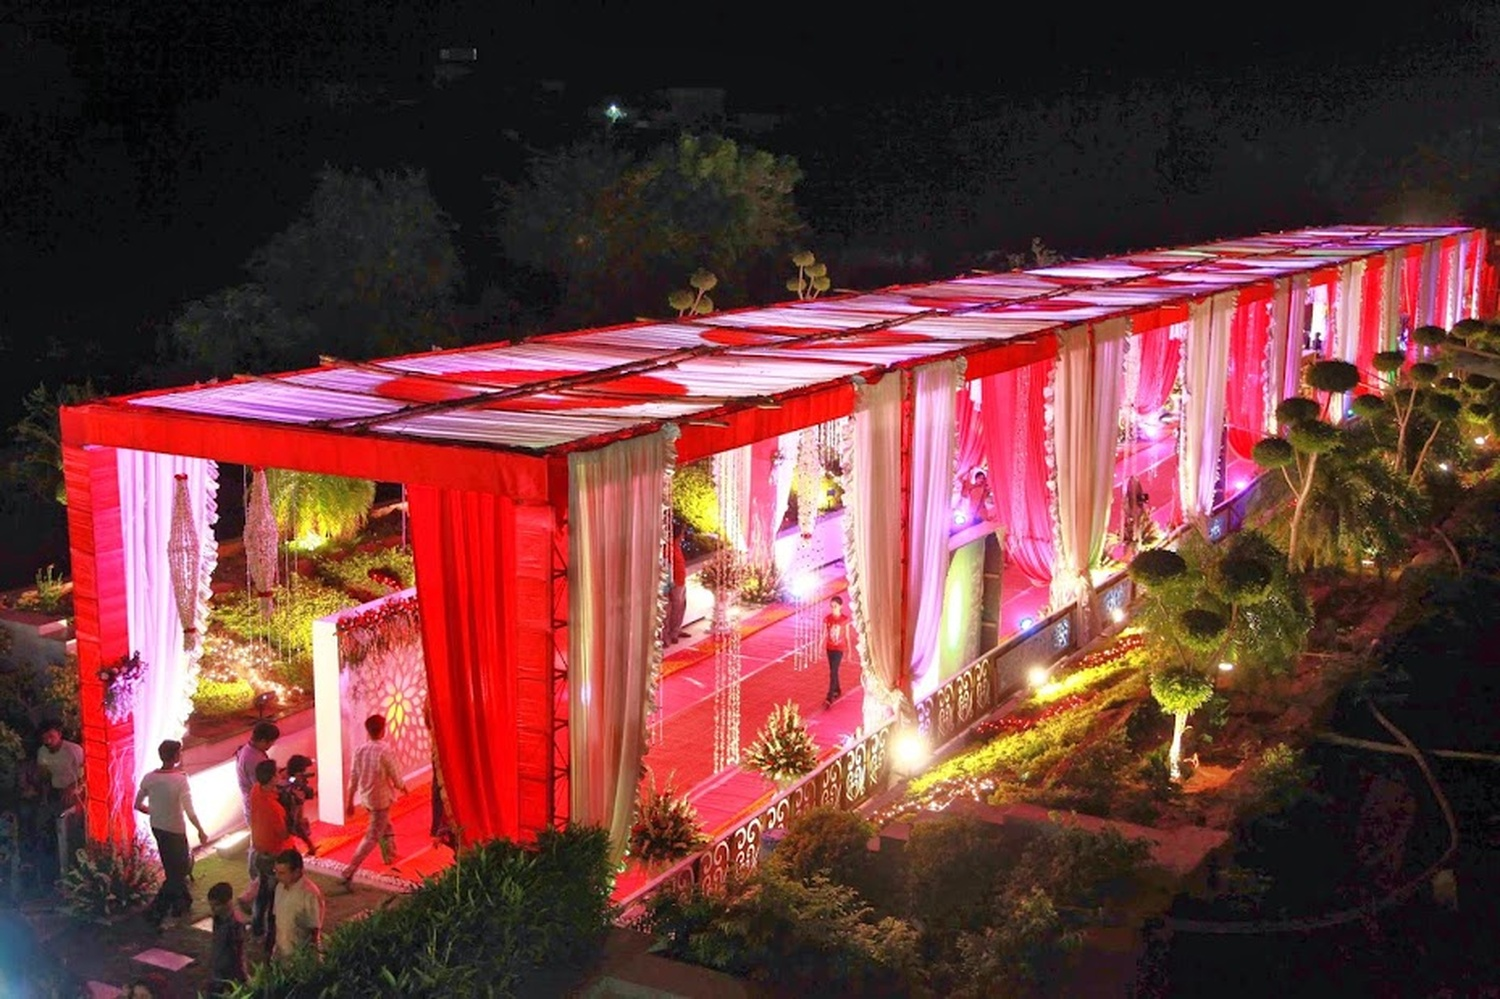 New mahesh tent house wedding decorator in jodhpur weddingz for Tent a house